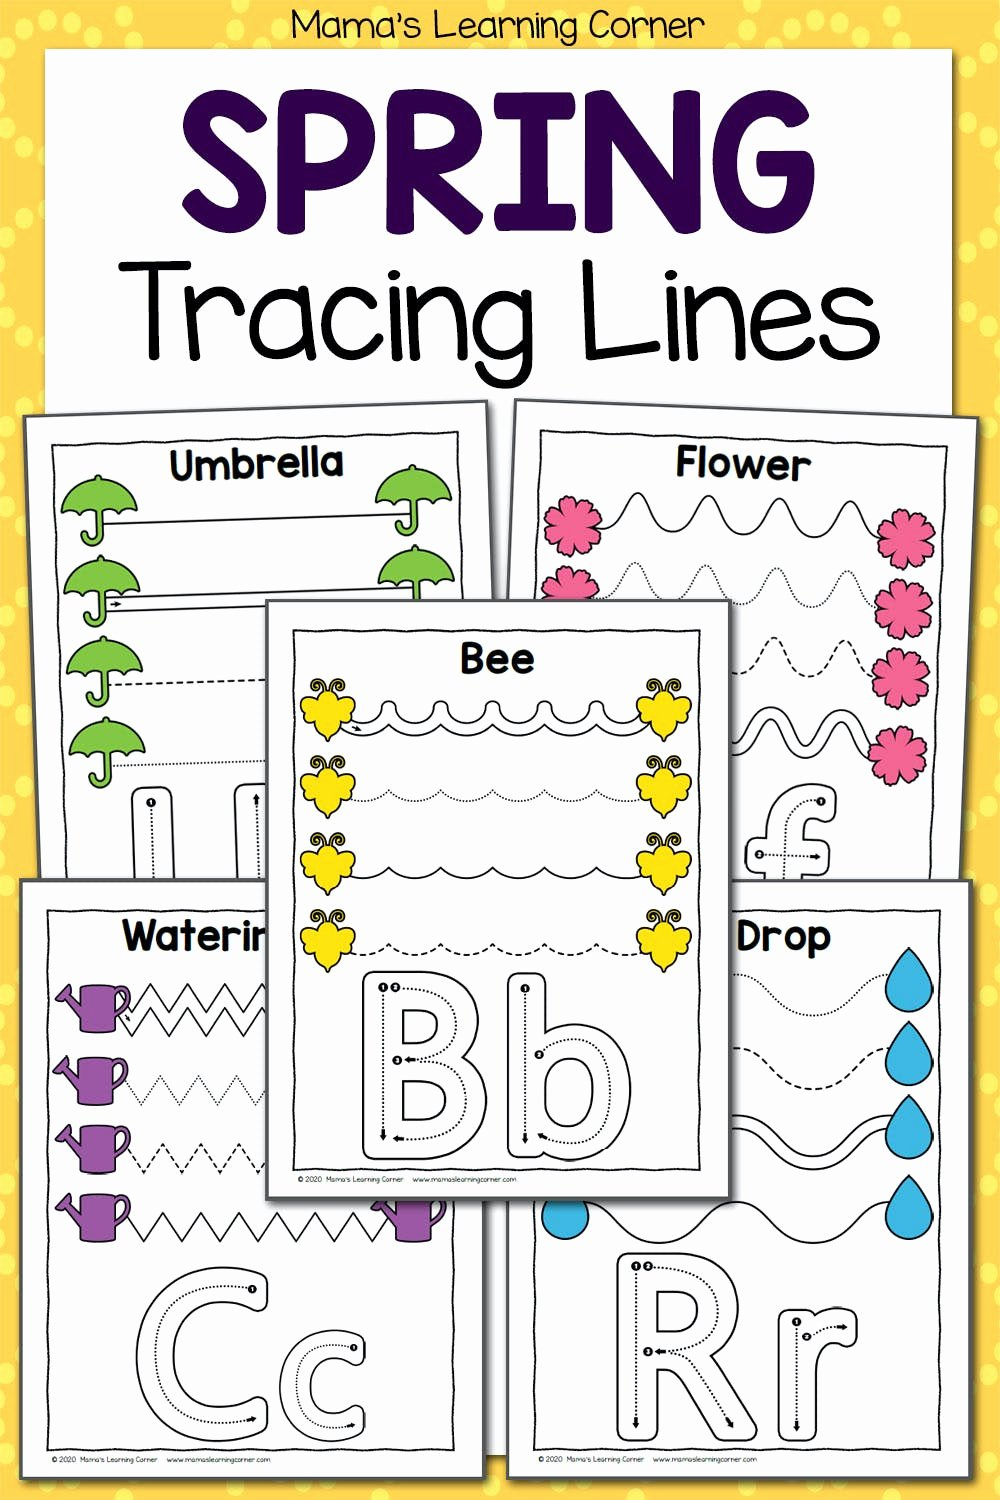 Trace the Lines Worksheets for Preschoolers Best Of Spring Tracing Worksheets for Preschool Mamas Learning Corner